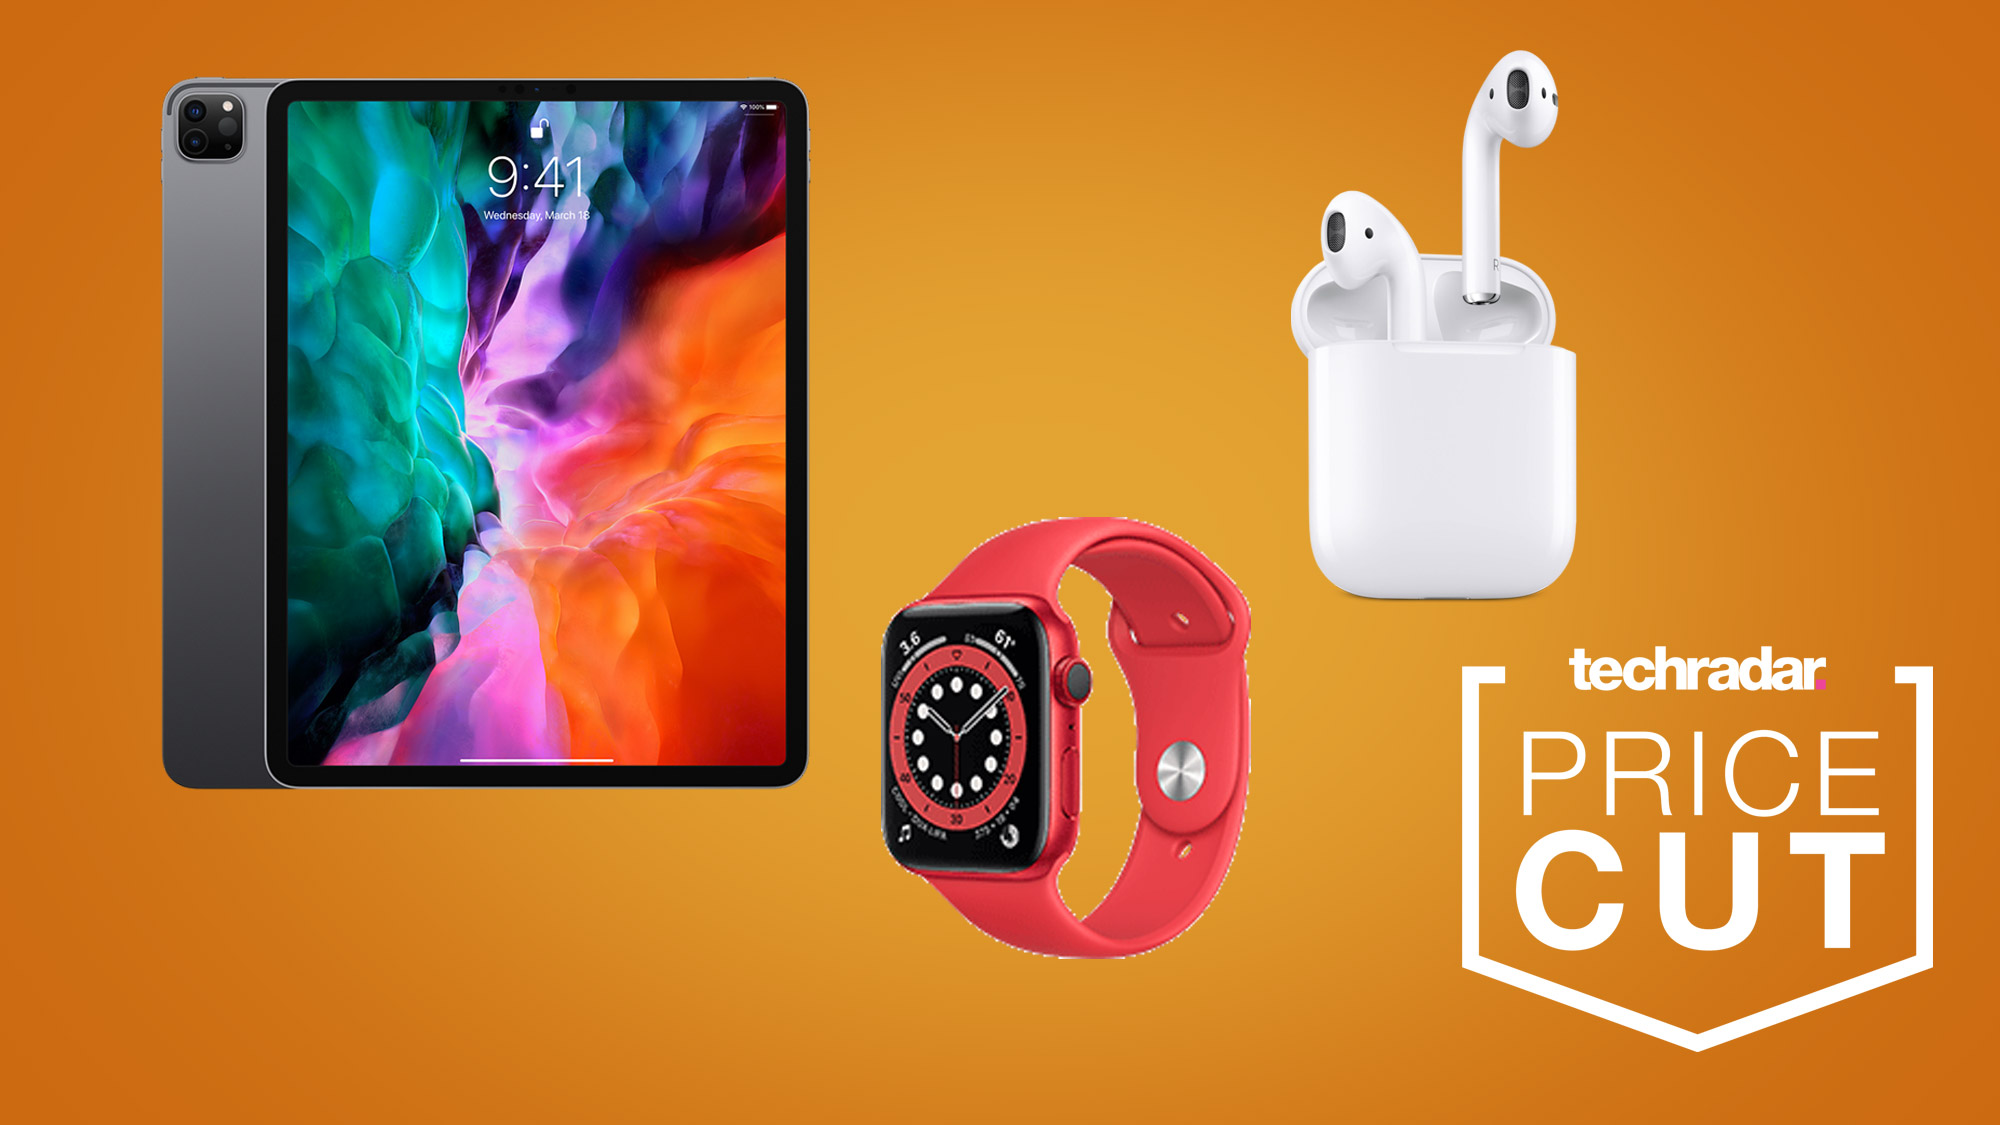 Huge Apple sale at Amazon: deals on AirPods, iPads, Apple Watch, and more